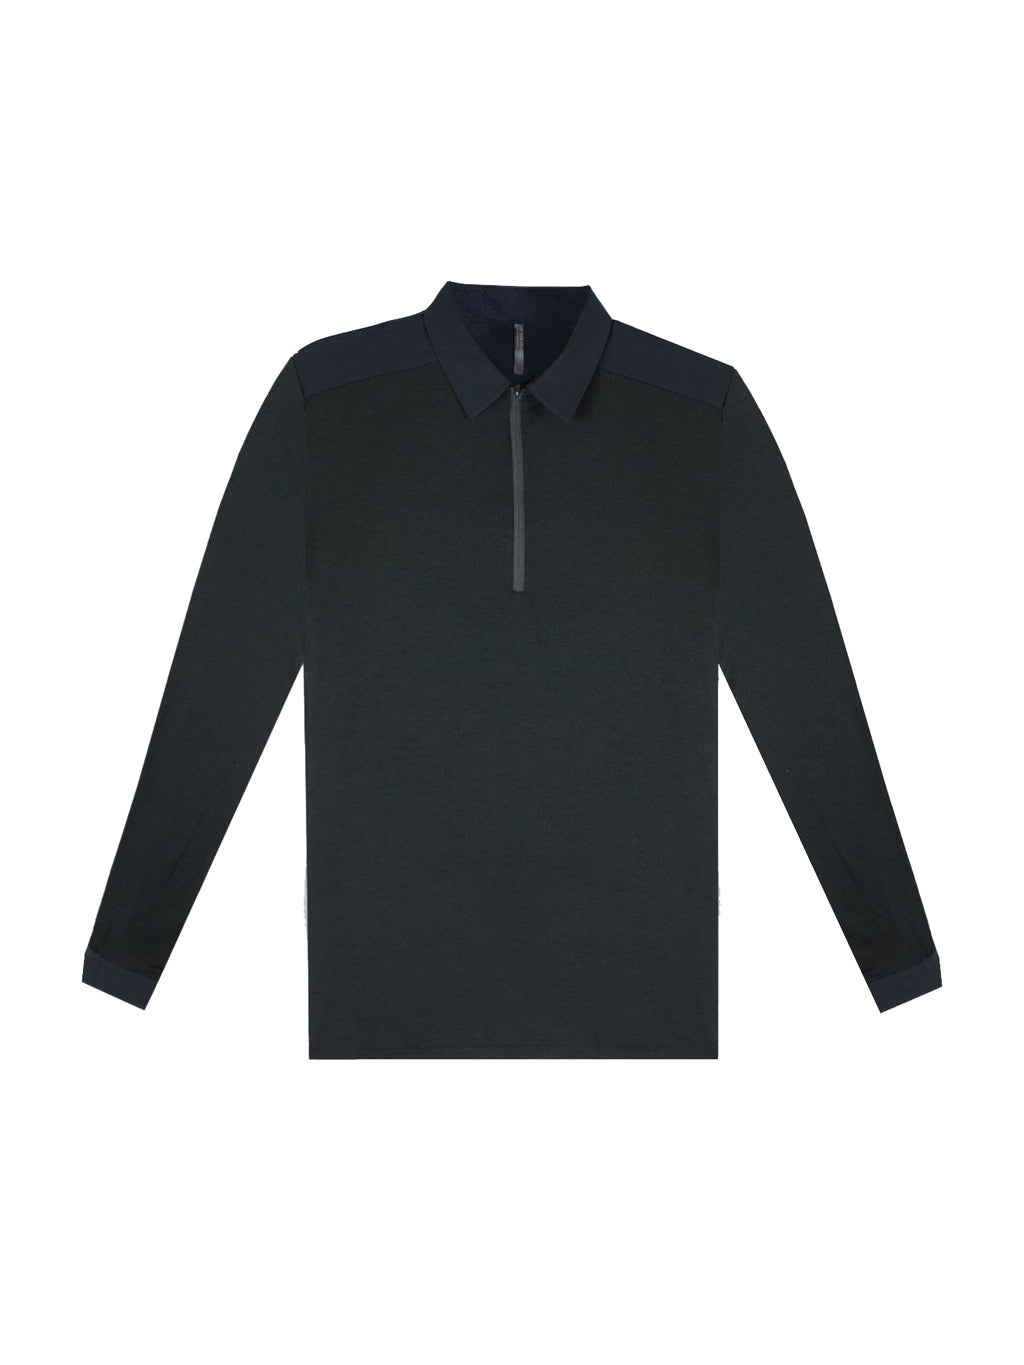 Black Frame Long Sleeve Polo T-Shirt